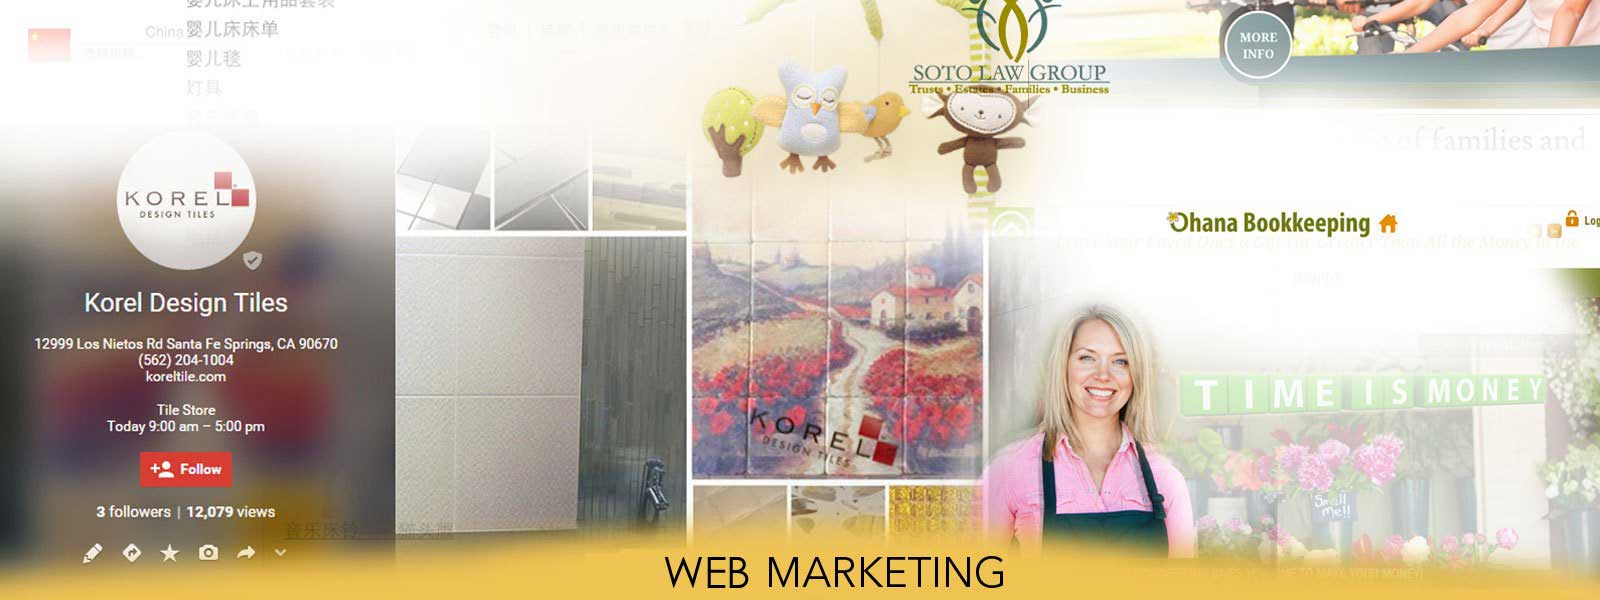 Neo Design Concepts - Web Marketing banner